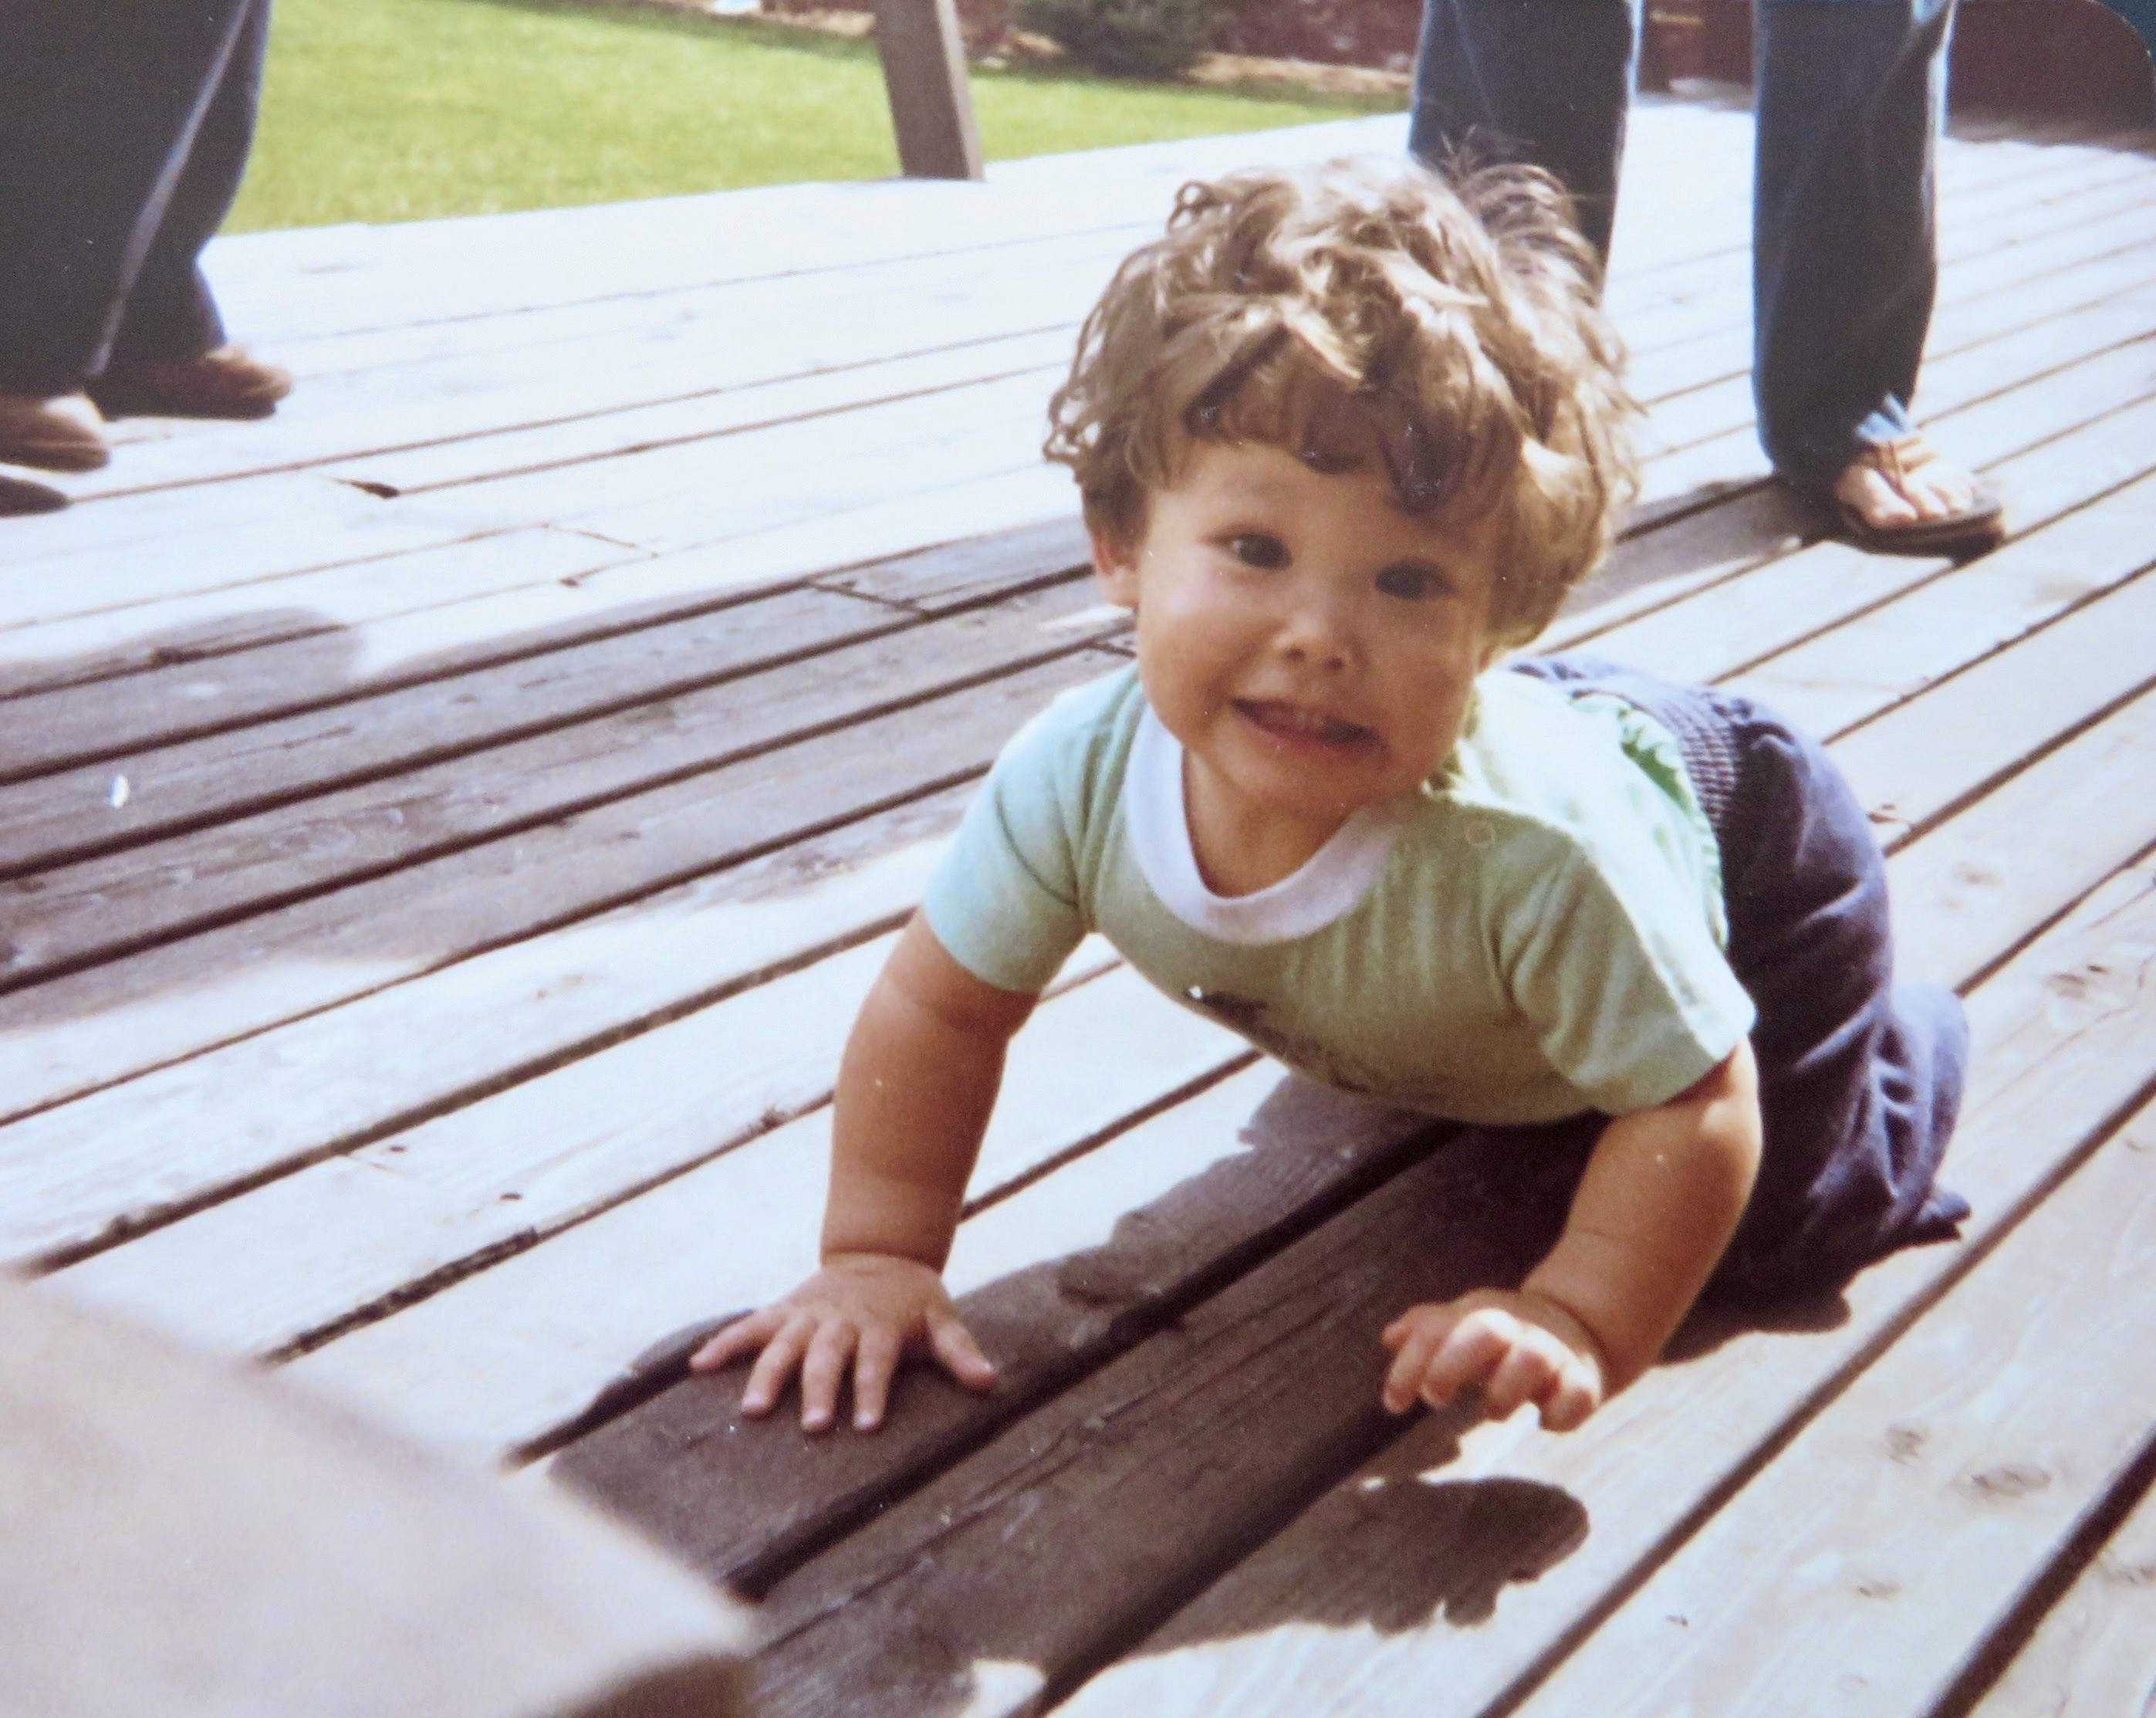 9 month old Amy smiling and crawling on a wooden deck.